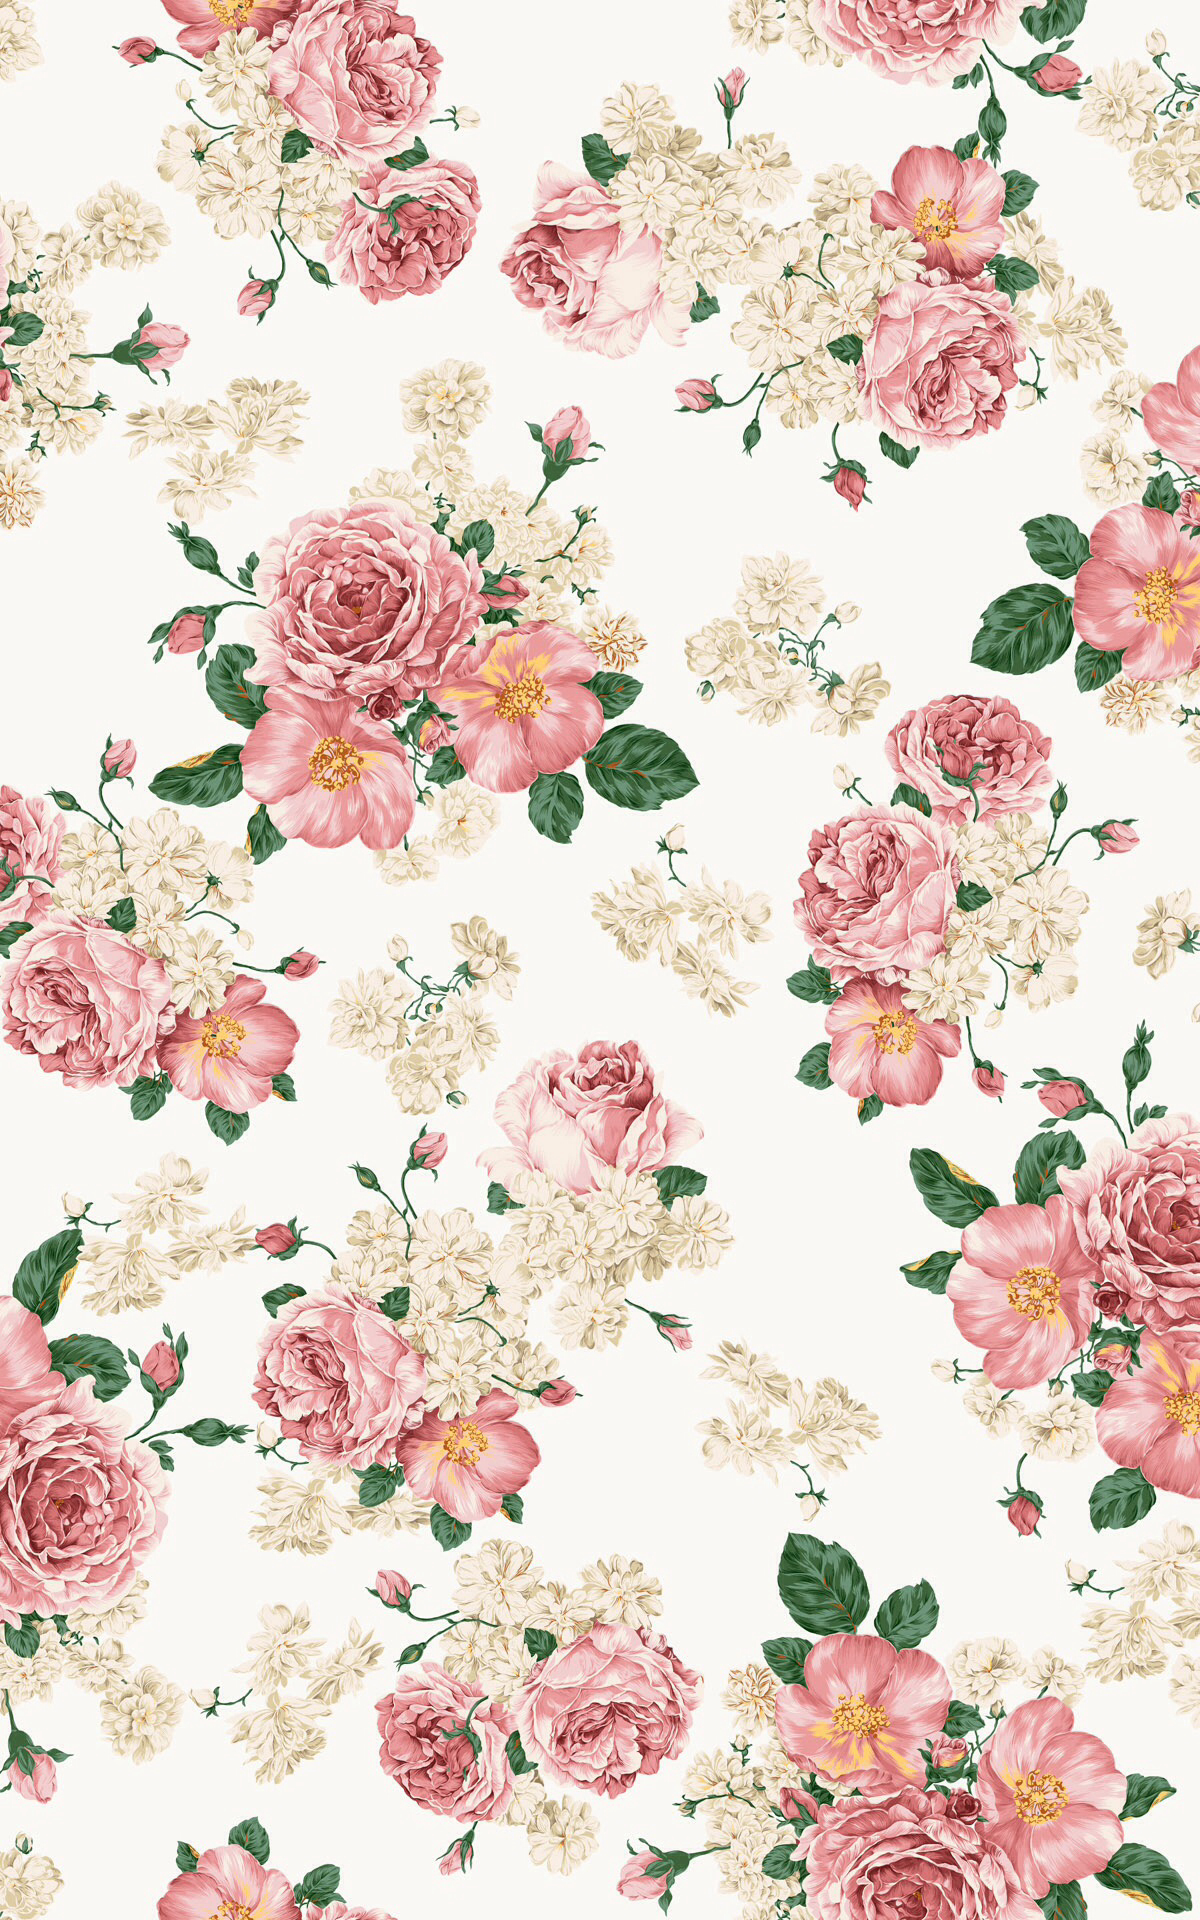 Floral-iPhone-wallpaper-wp580249